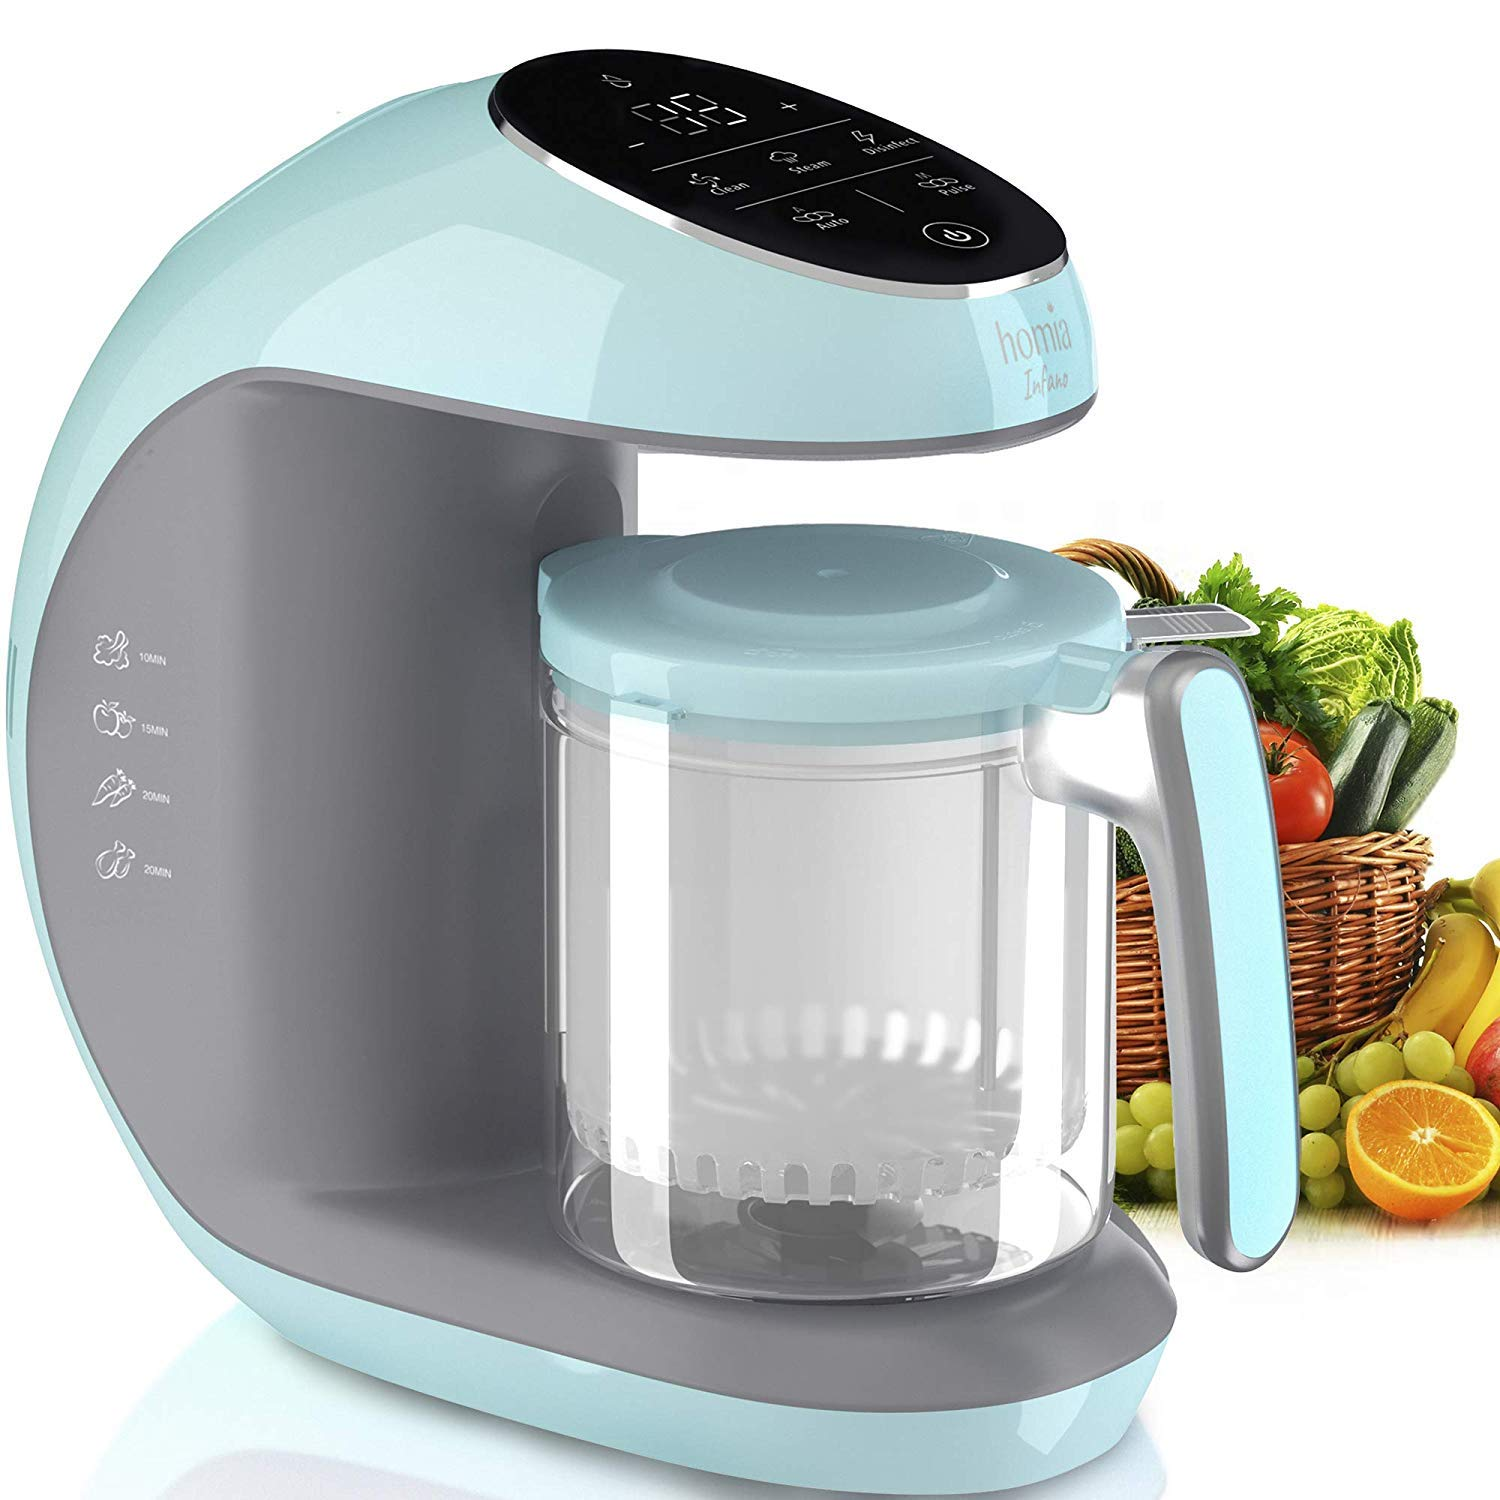 Top 15 Best Baby Food Steamer And Blender (2020 Reviews & Buying Guide) 9